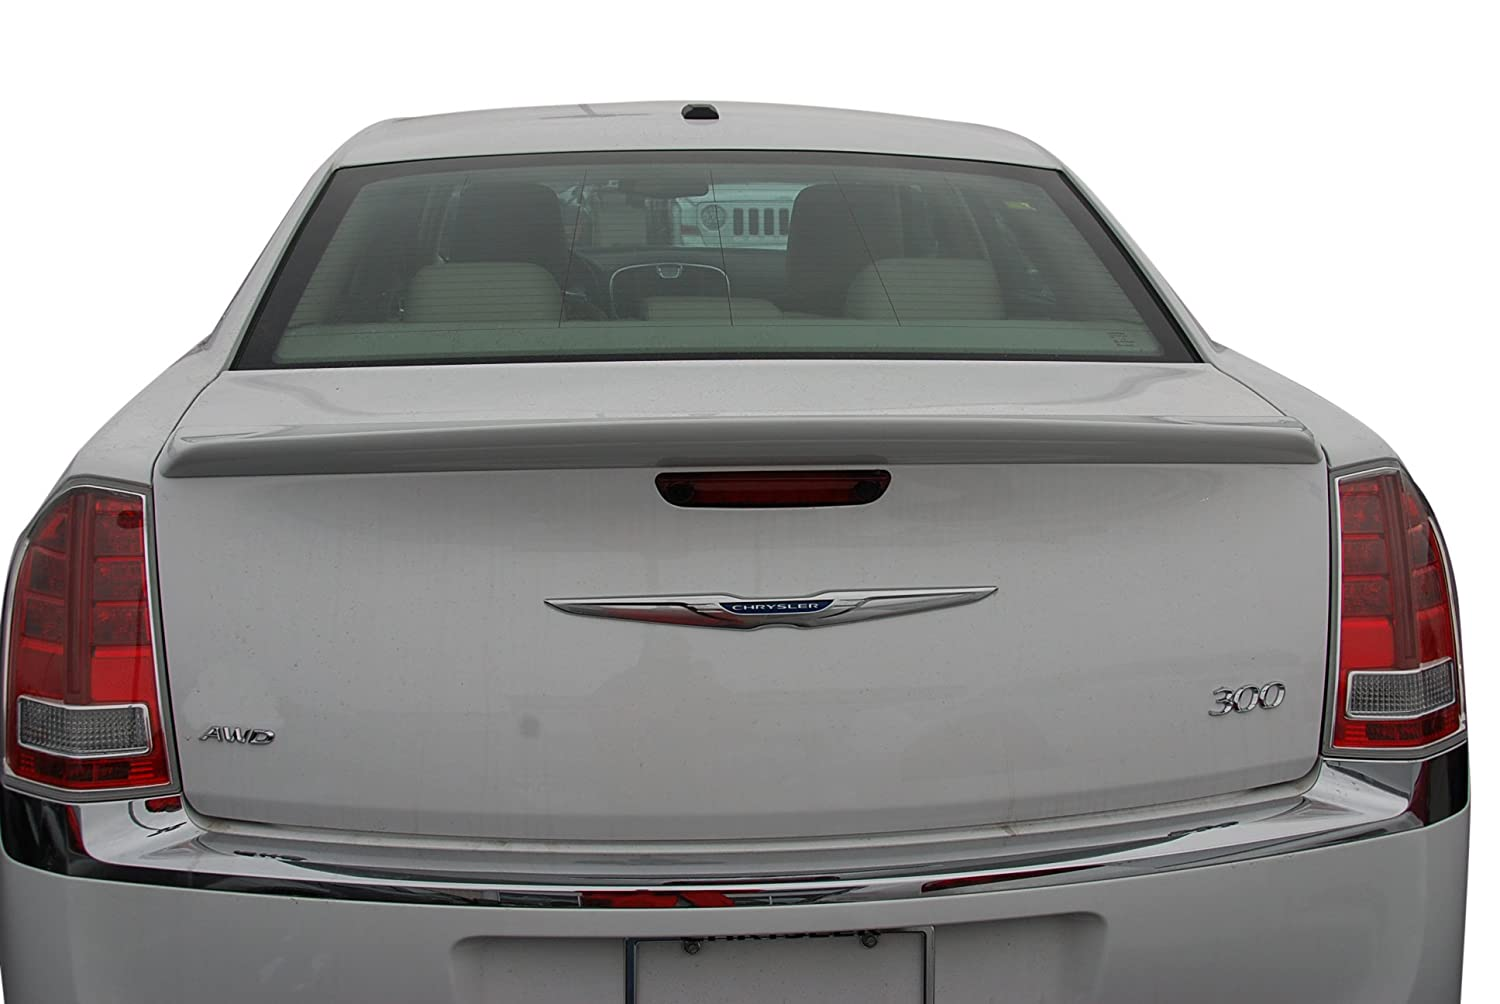 Painted Factory Style Spoiler fits the Chrysler 300 518 Maximum Steel PAR with 3M tape included Spoiler and Wing King ®